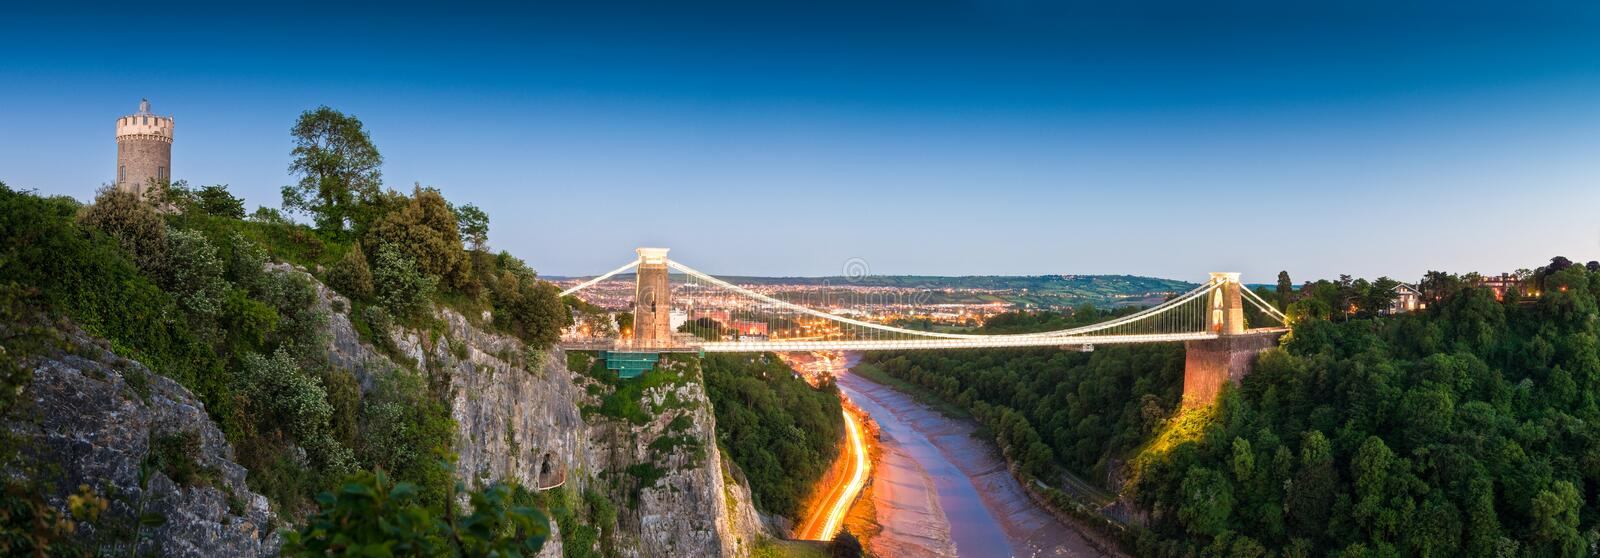 Clifton Suspension Bridge, Großbritannien stockbild